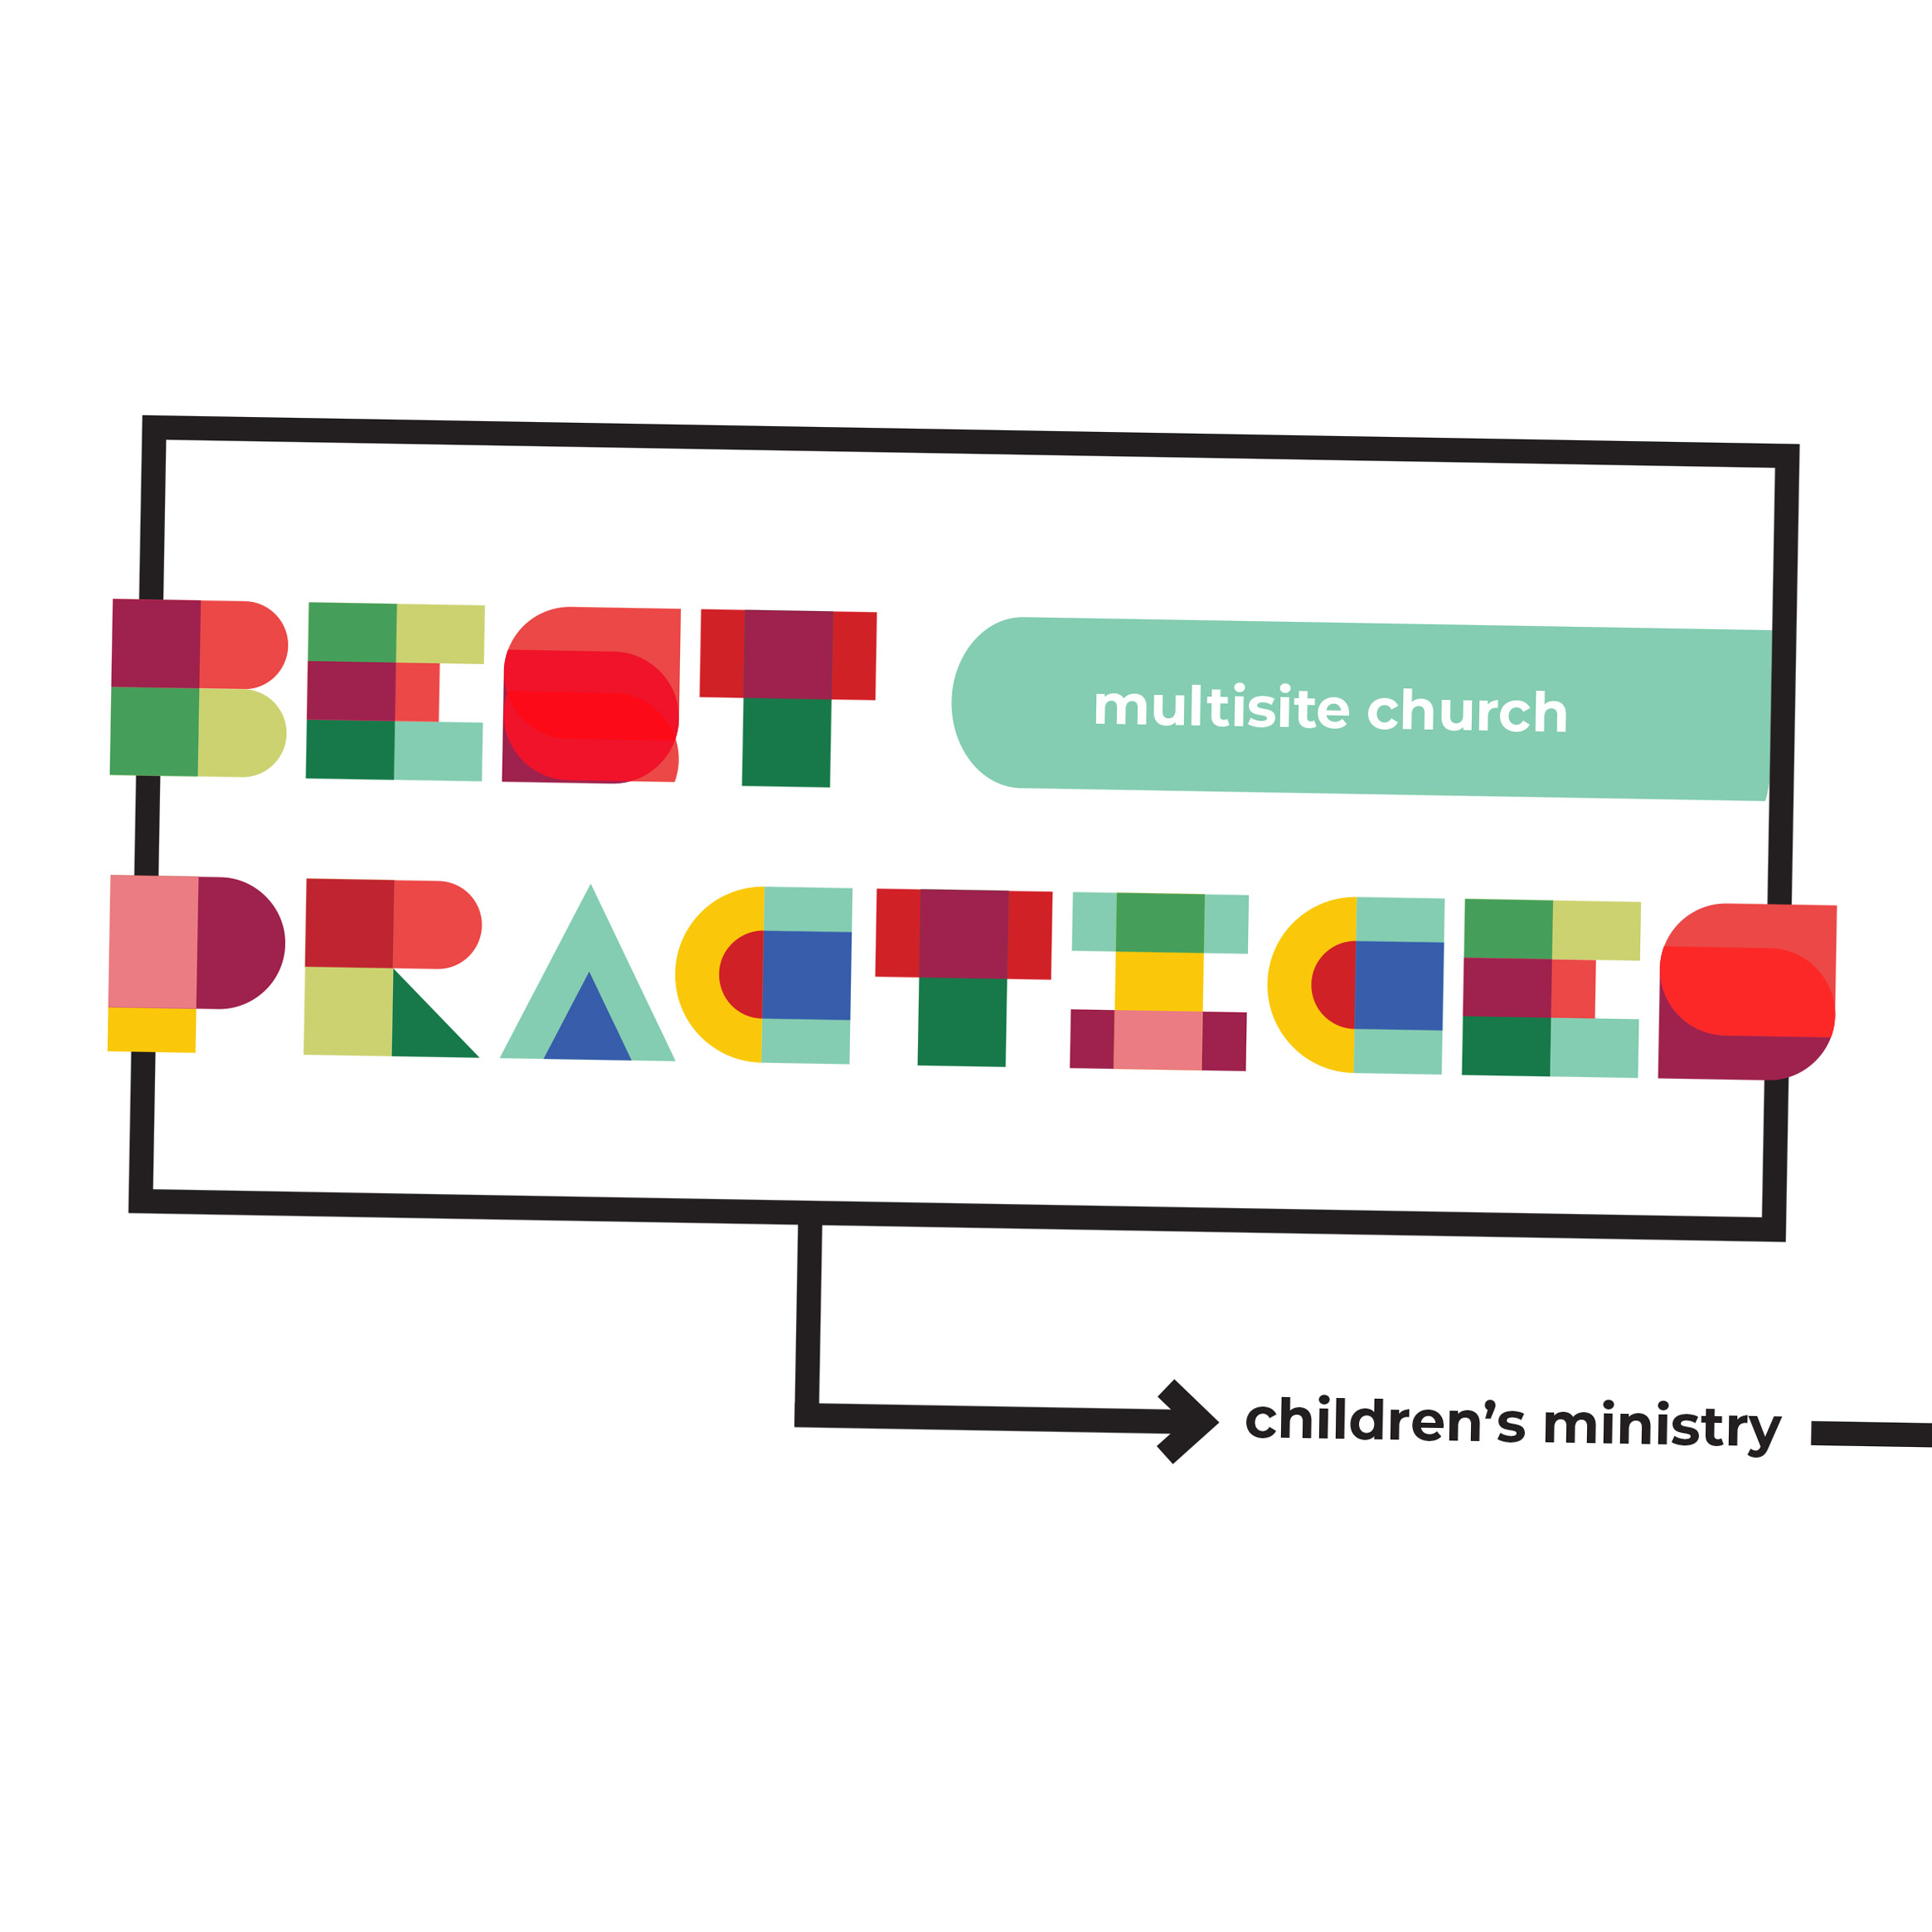 Children's Ministry Best Practices (Multisite Church): Community Christian Church, Chicagoland